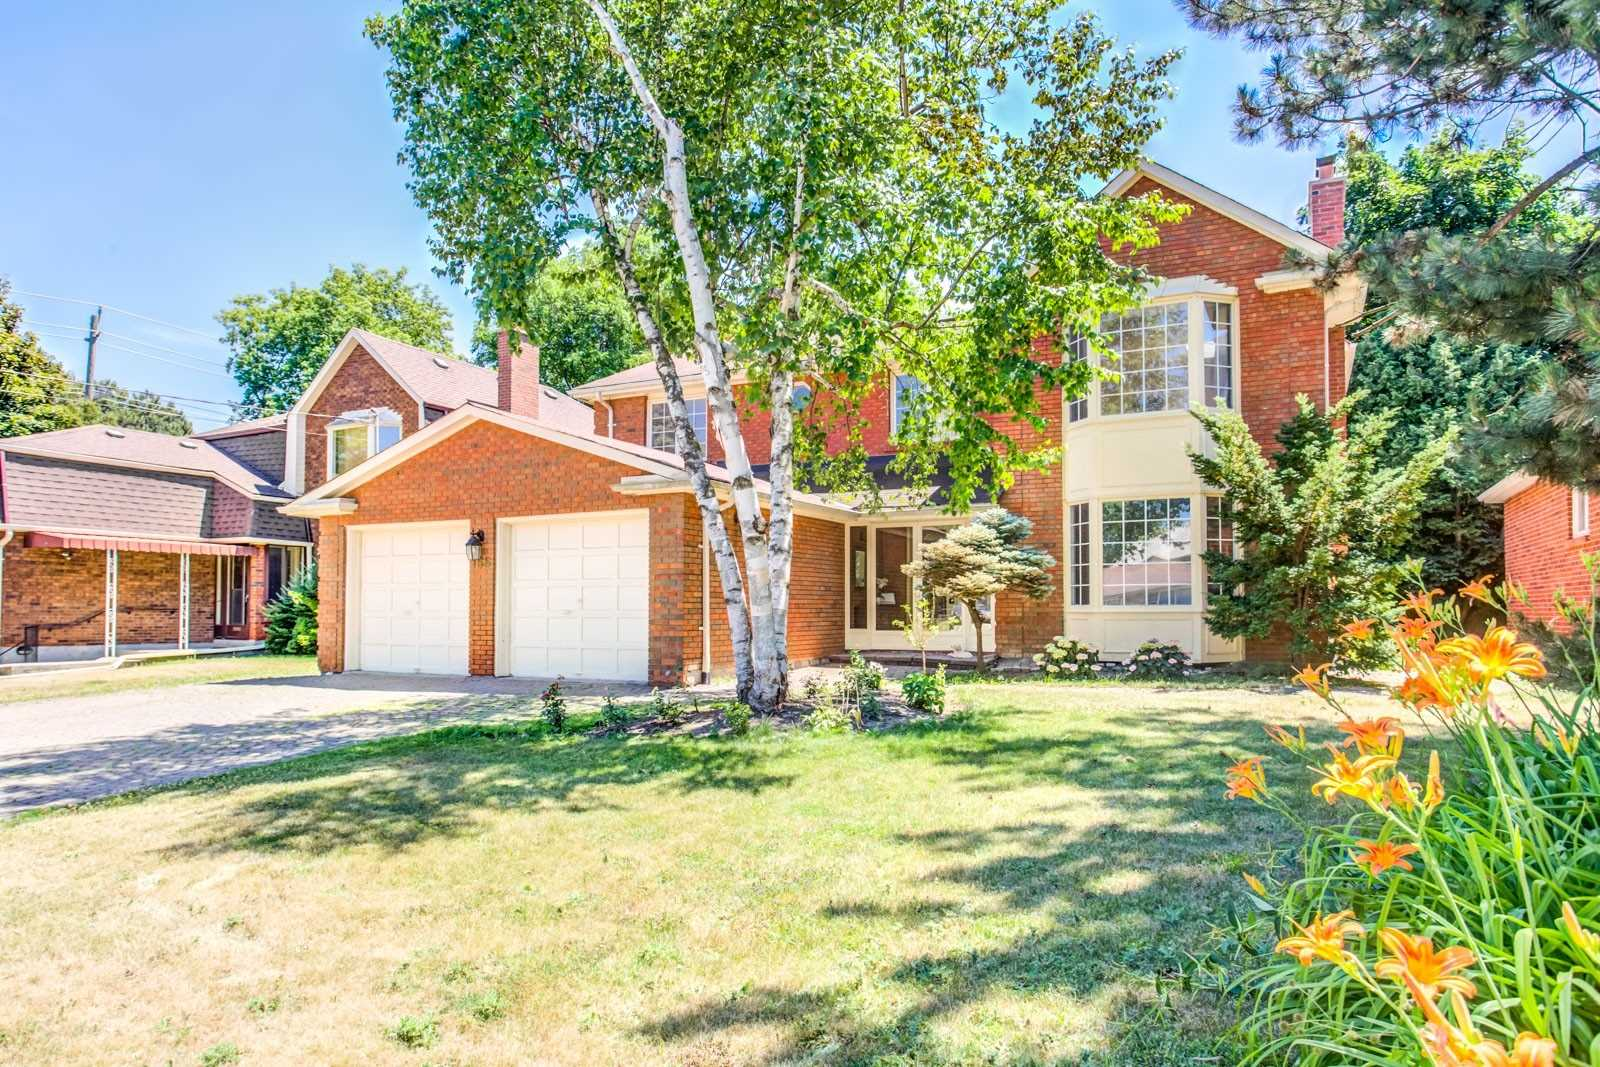 155 Highland Cres, Toronto, Ontario M2L1H2, 4 Bedrooms Bedrooms, 8 Rooms Rooms,4 BathroomsBathrooms,Detached,For Sale,Highland,C4846127